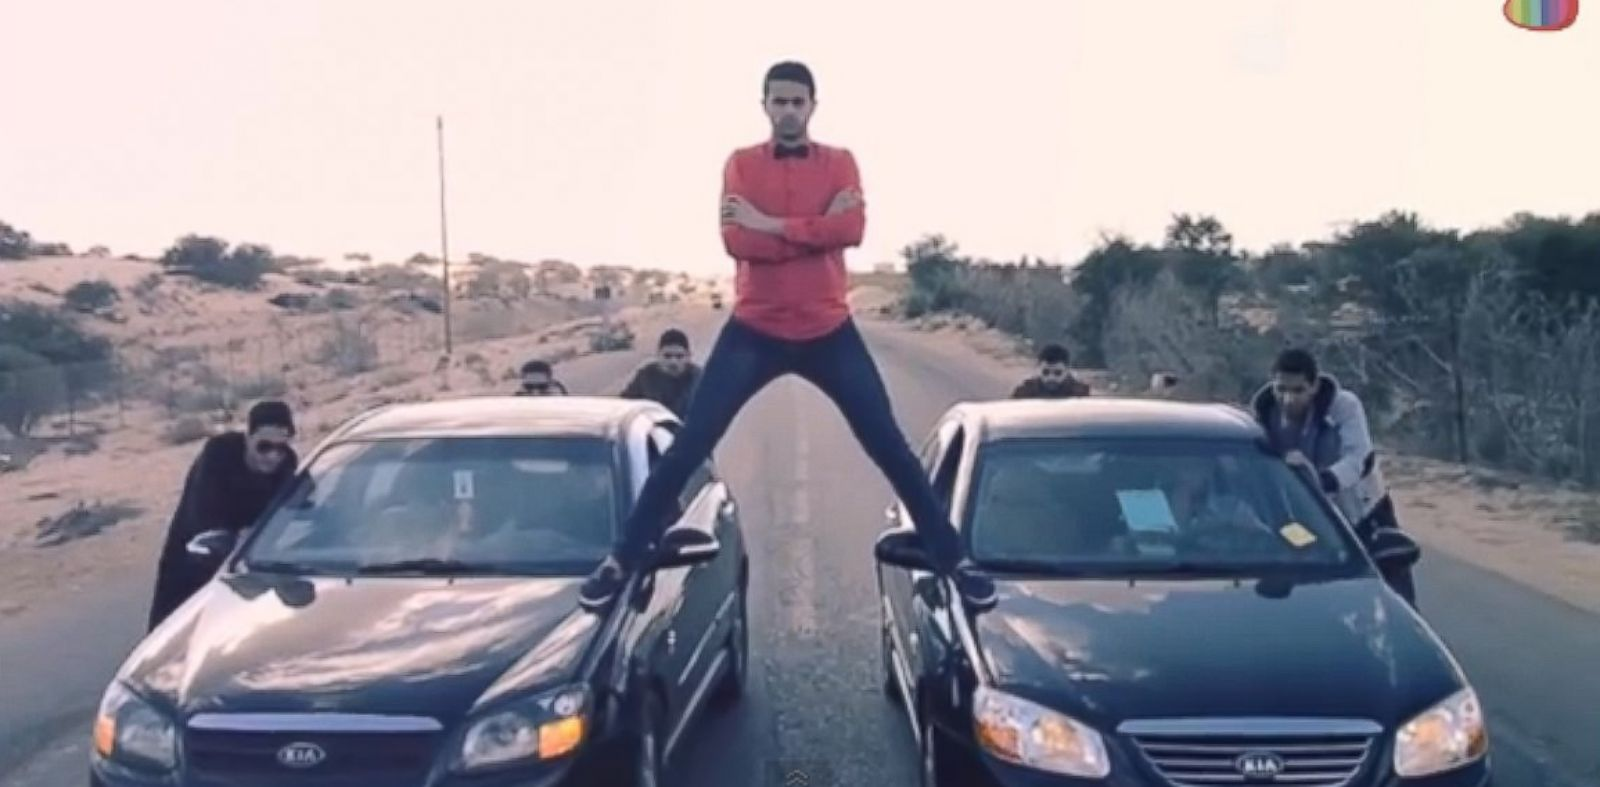 PHOTO: A Palestinian comedy troupe parodied a viral Volvo advertisement that featured martial artist Jean-Claude Van Damme.